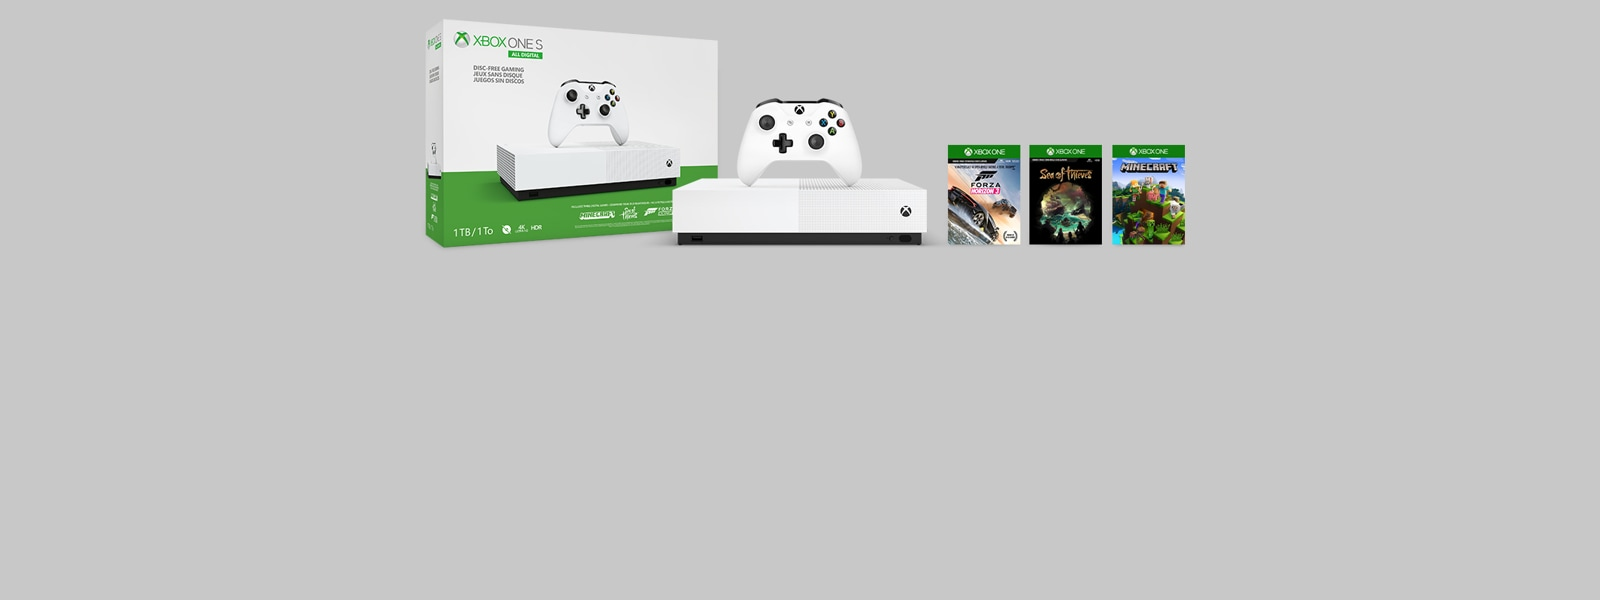 New Xbox One S All-Digital Edition console displaying preloaded game titles: Forza Horizon 3, Sea of Thieves, Minecraft